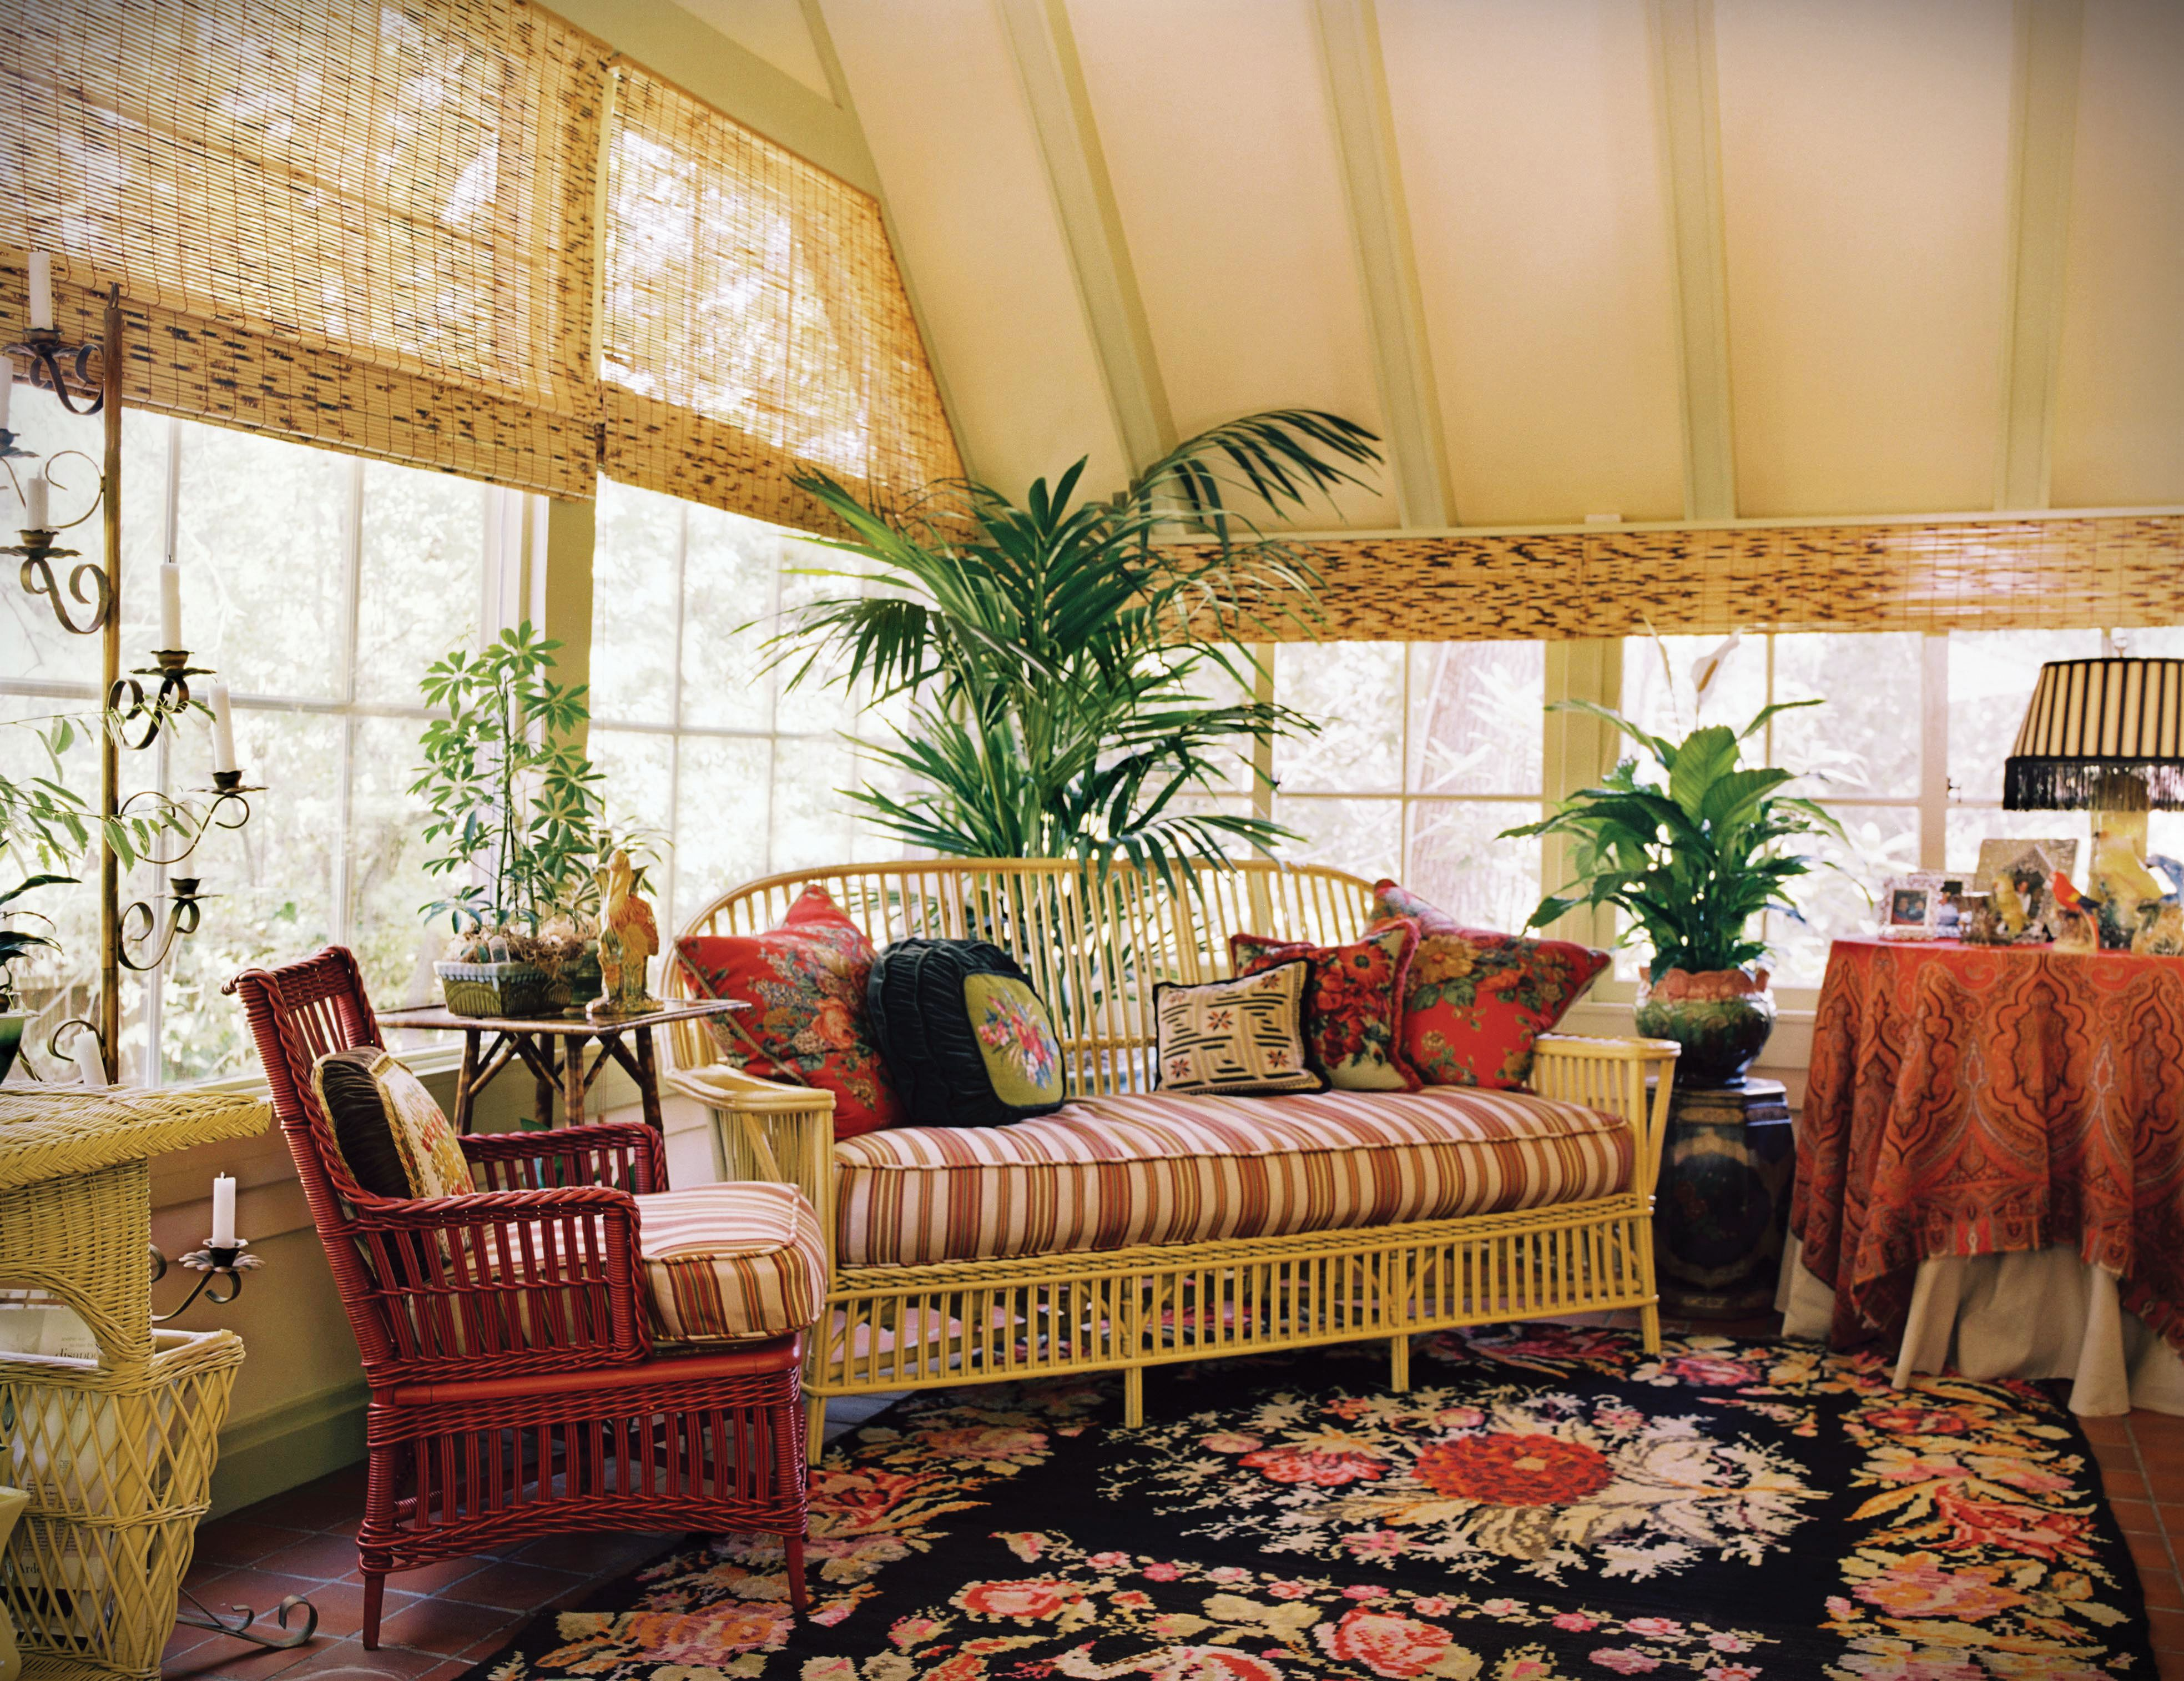 Plants For Sunrooms | Traditional Mix In A Sunroom With A Palm Tree And  Peace Lily · Traditional PorchTraditional DesignSunroom IdeasSunroom ... Part 38